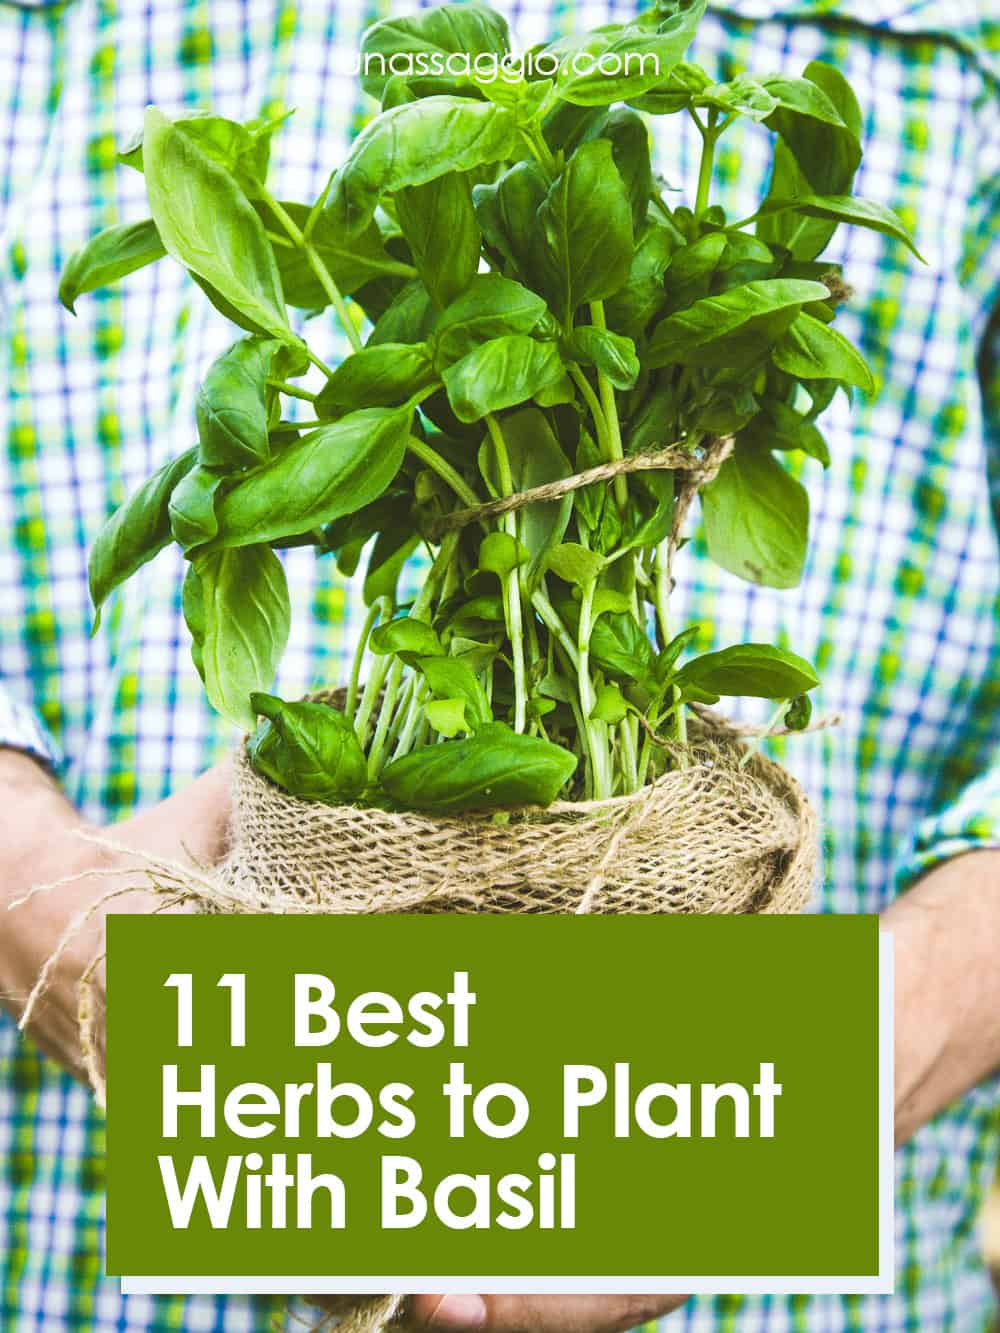 11 Best Herbs to Plant With Basil